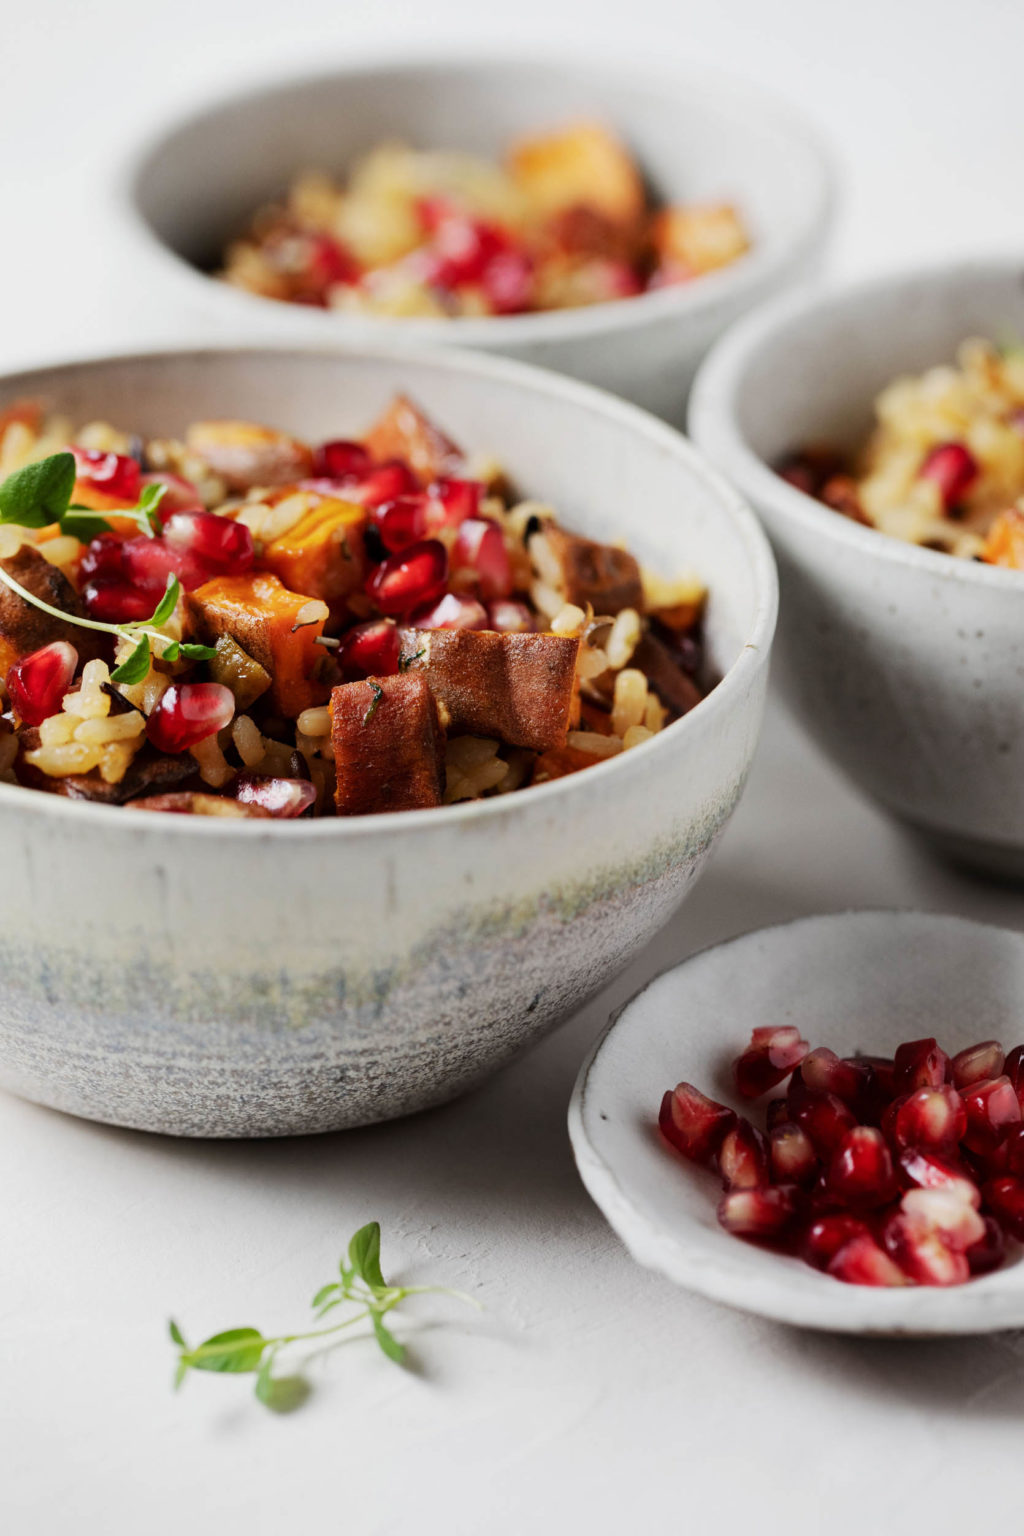 Several bowls contain the ingredients for a vegan rice and sweet potato holiday side dish.